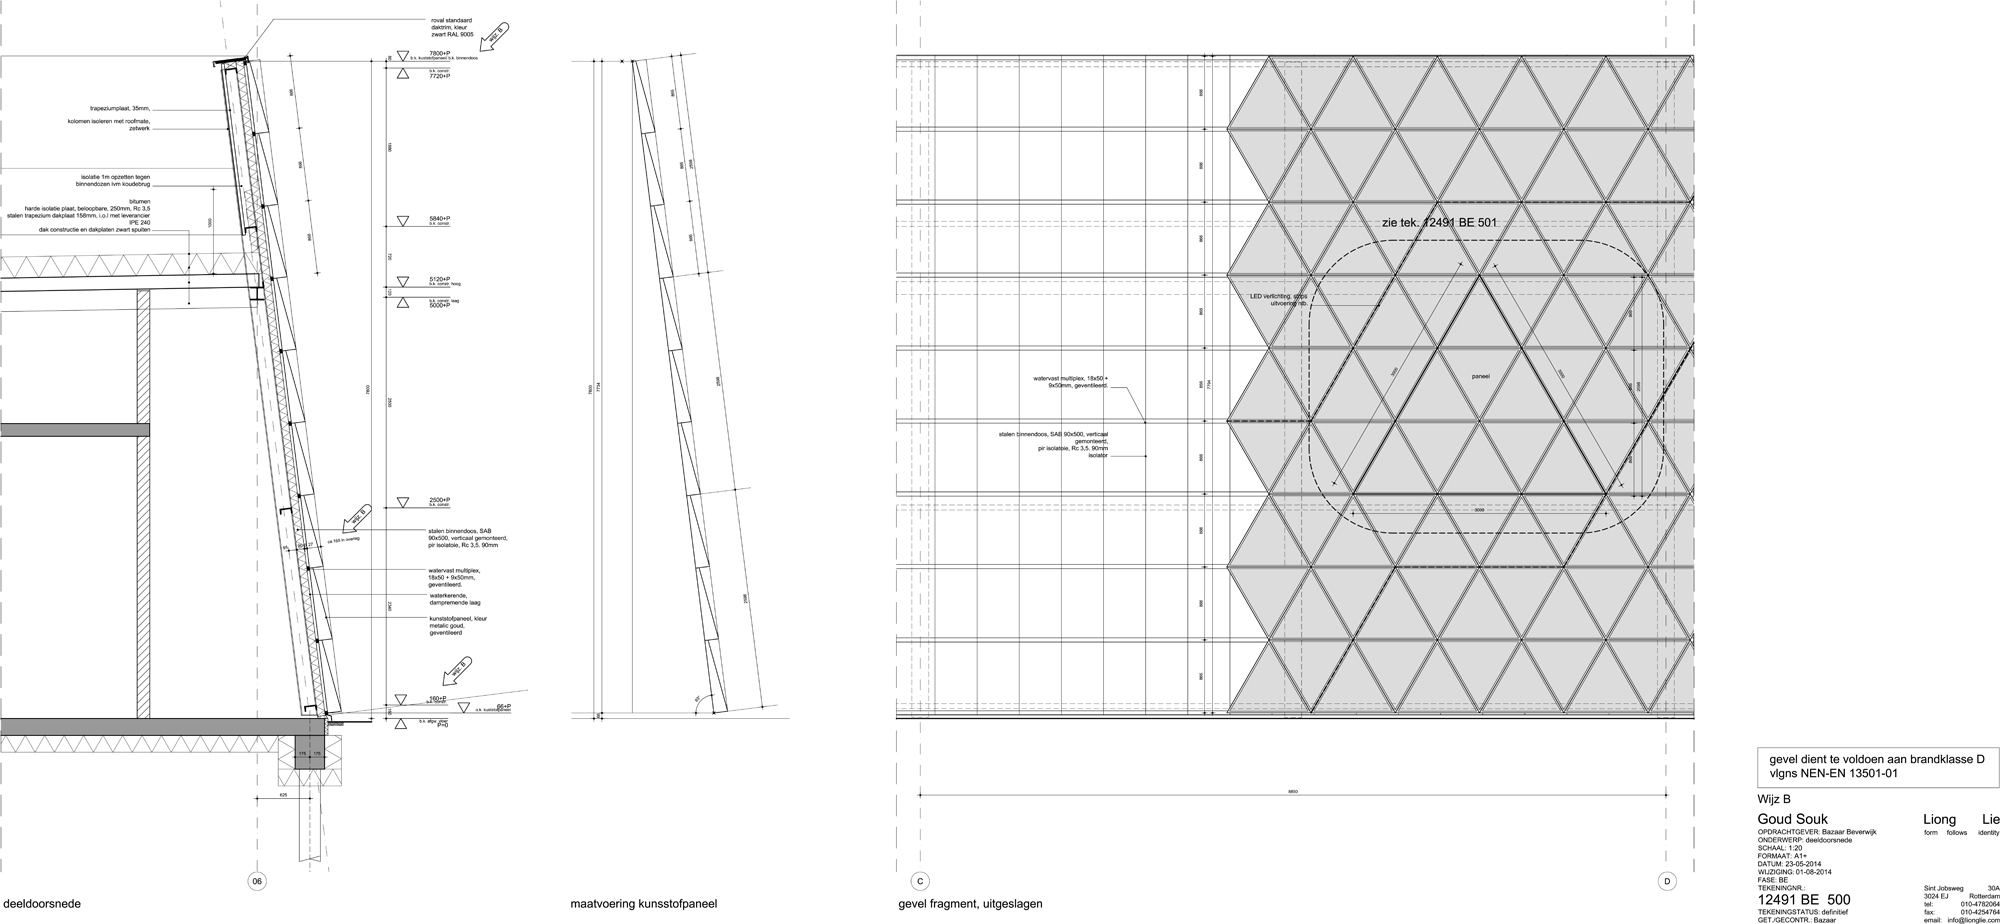 V:lionglielionglie projects12491_Gold Souk1 Drawings1 Mai